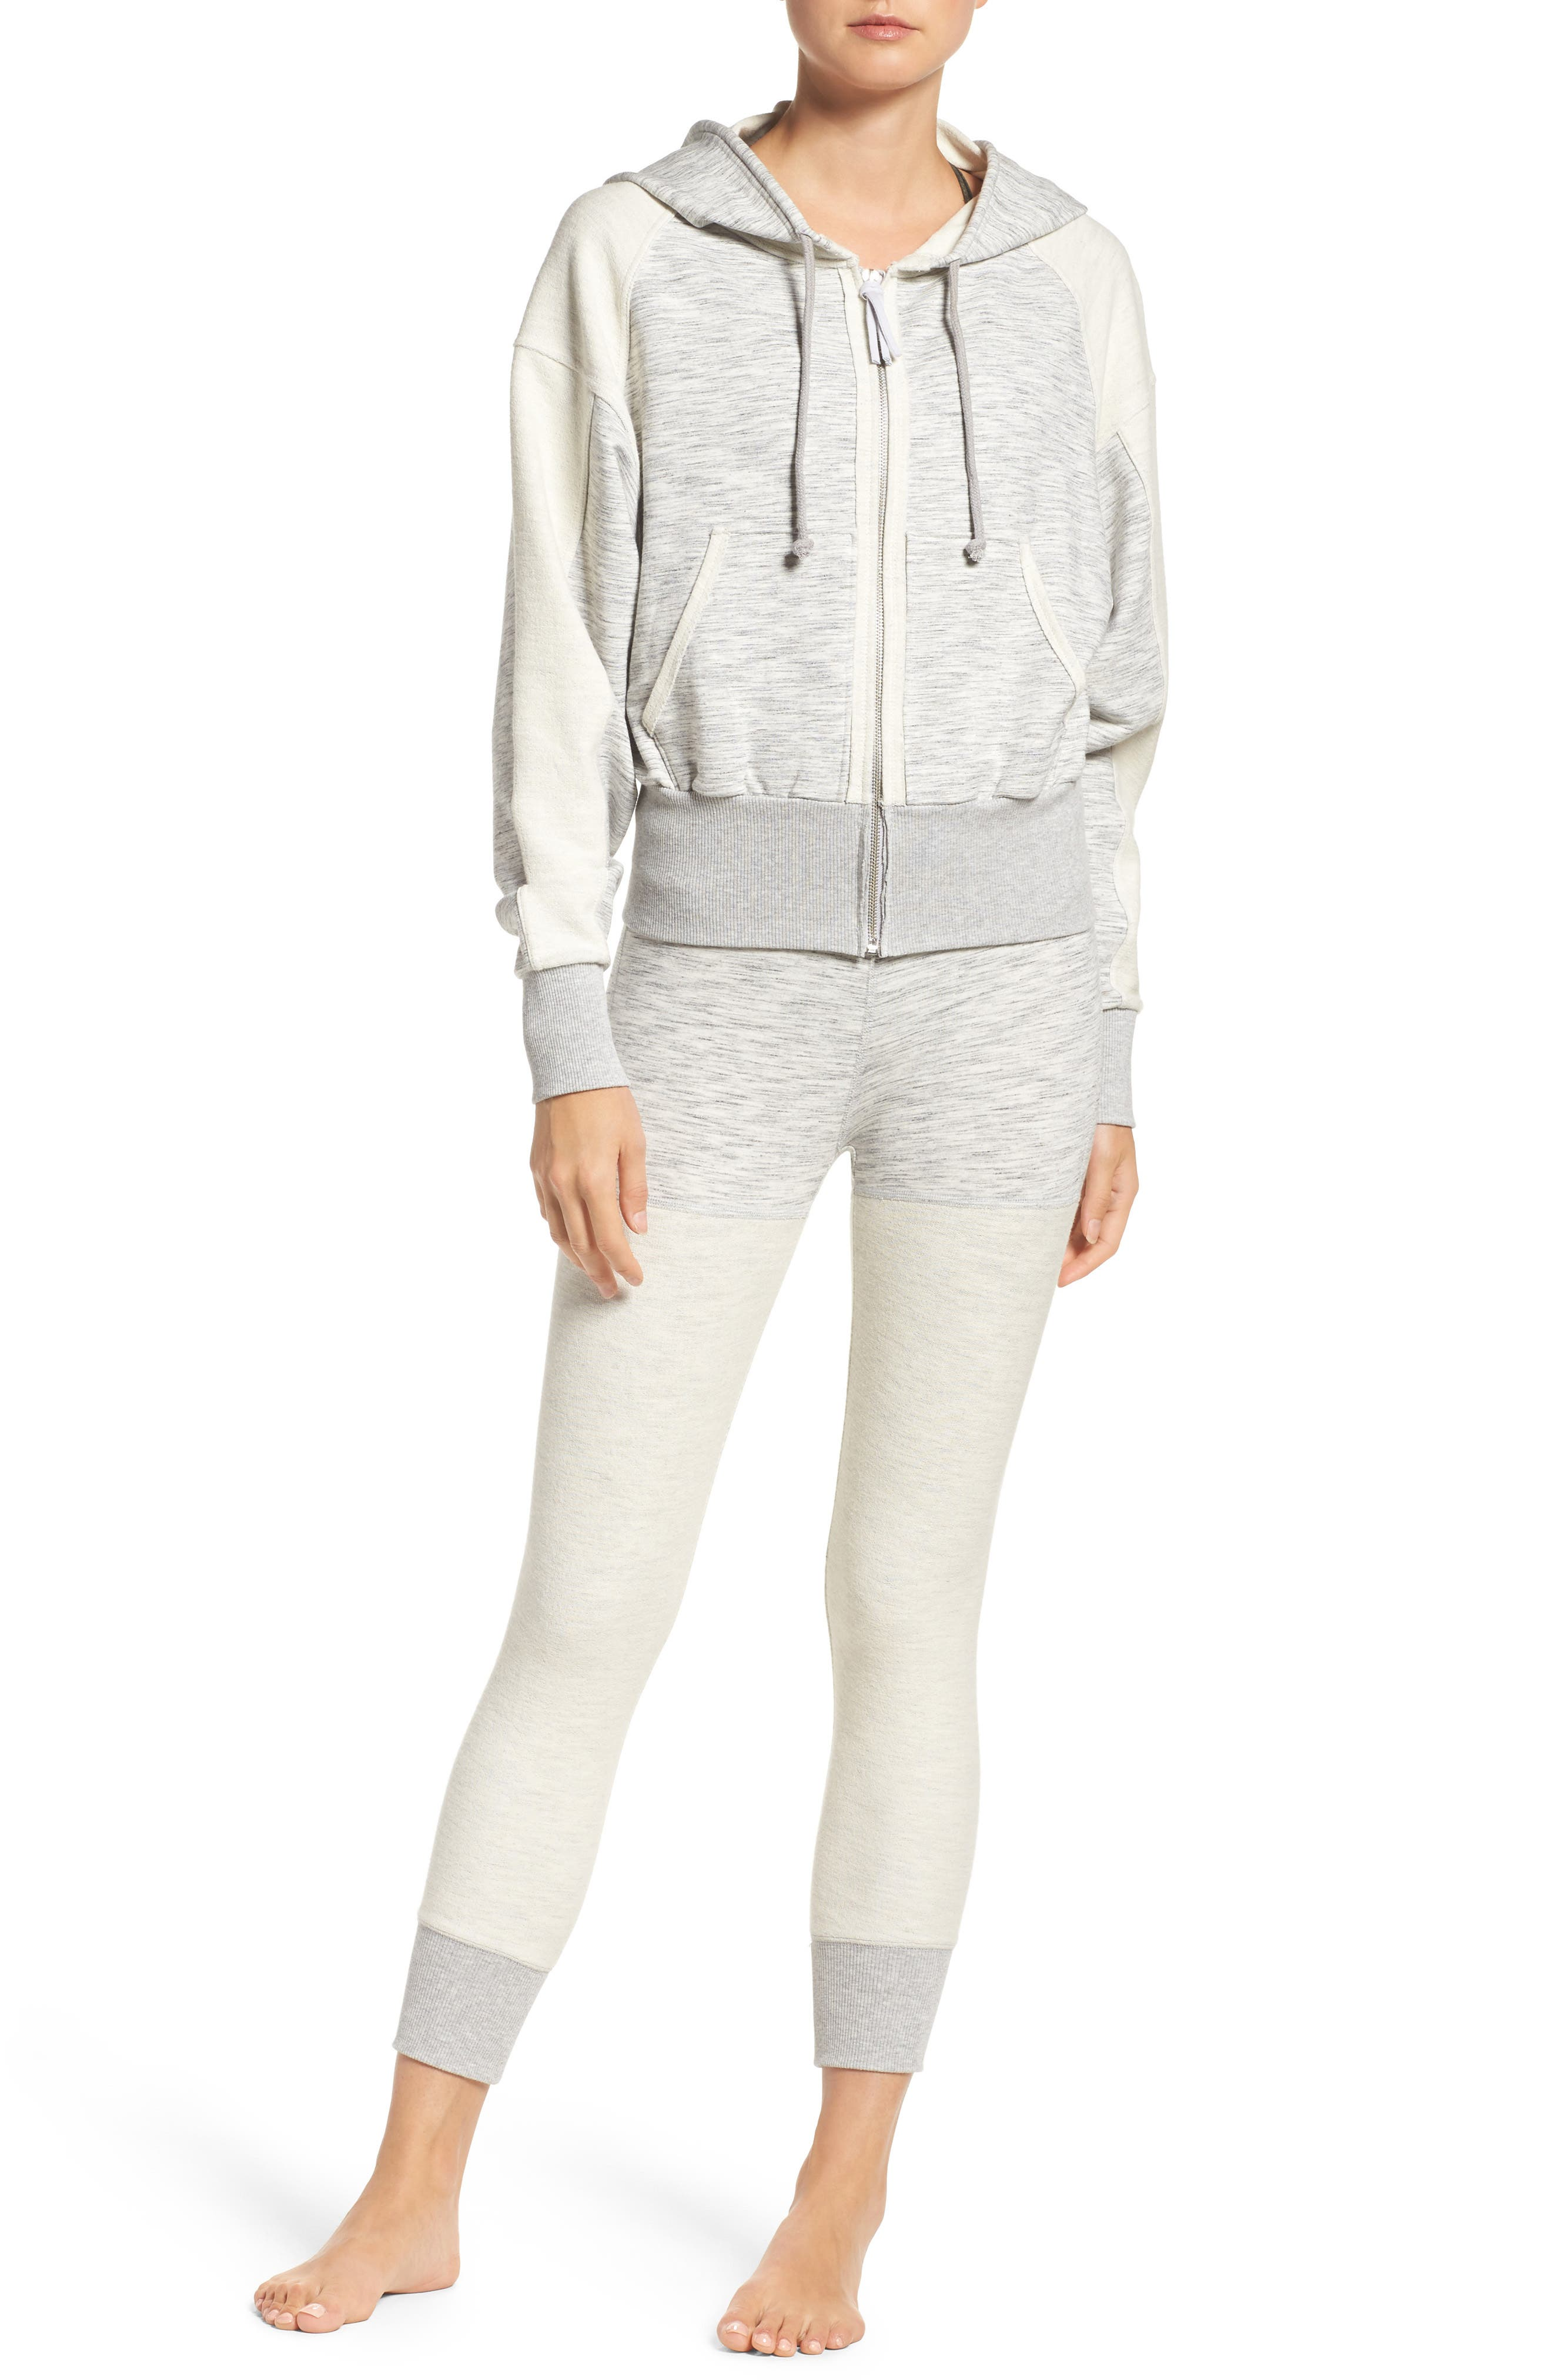 Free People Hoodie & Leggings Outfit with Accessories